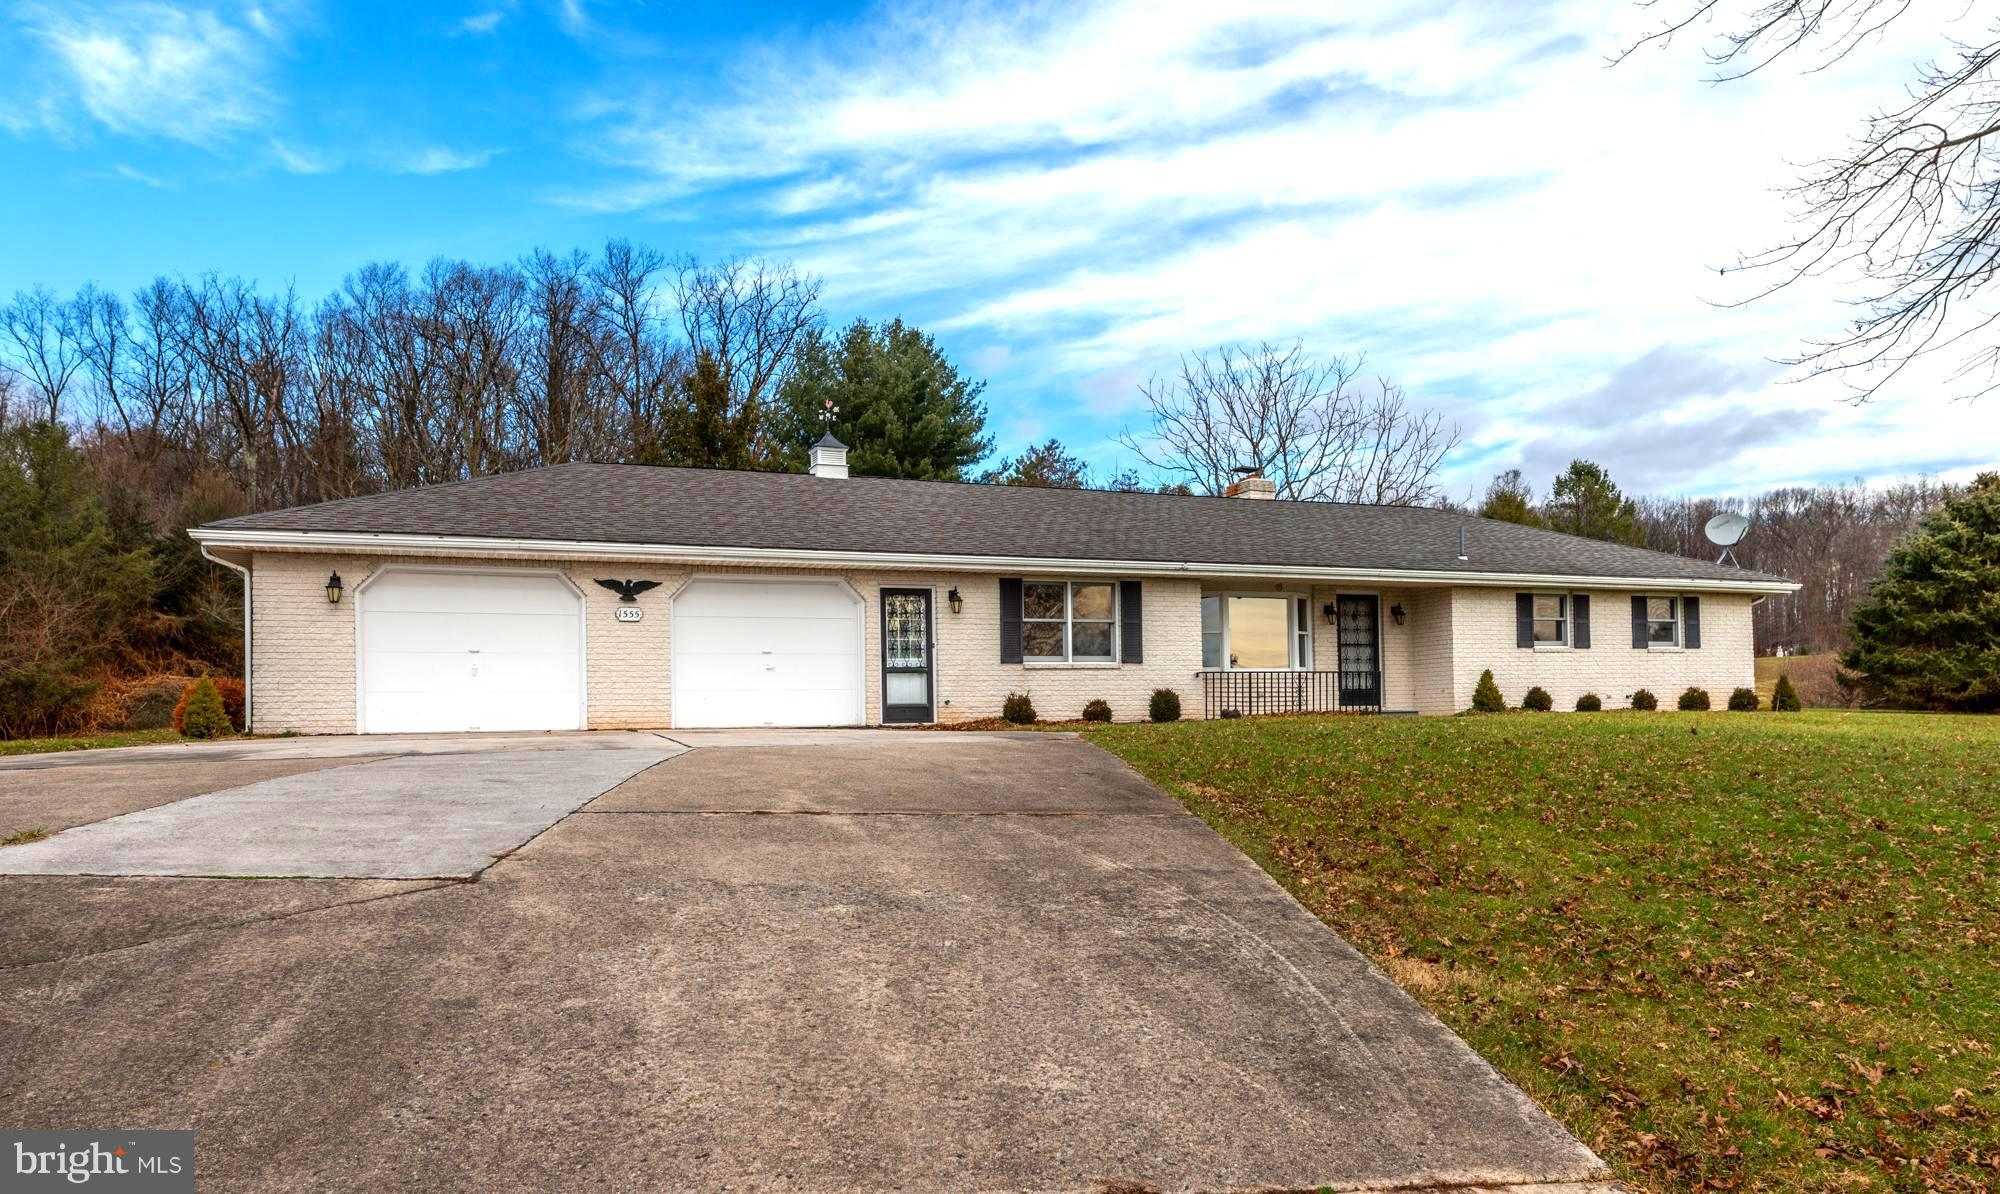 1555 COUNTY LINE ROAD, YORK SPRINGS, PA 17372